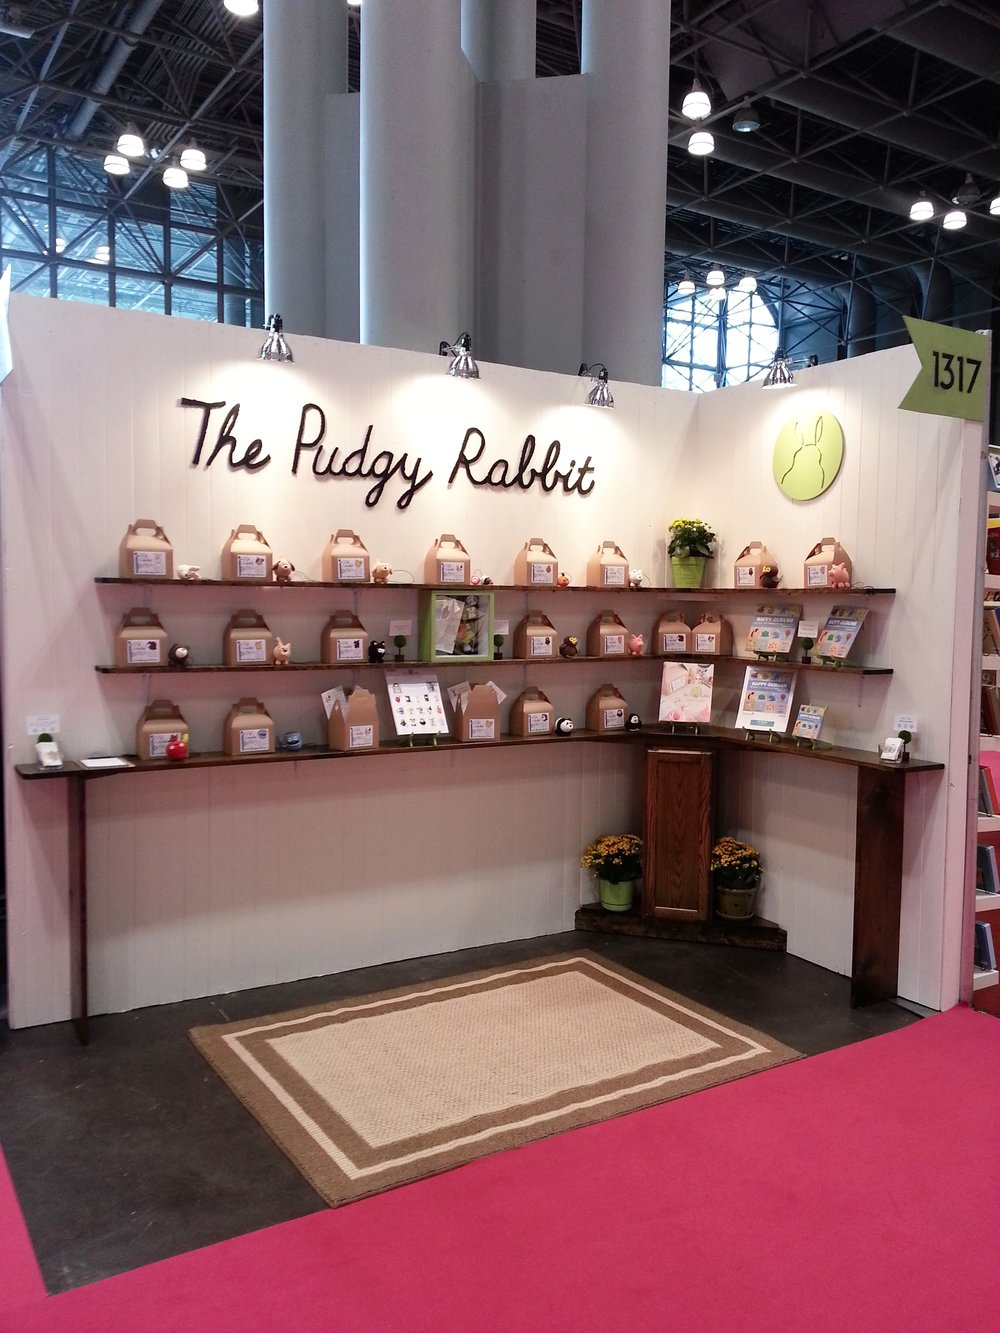 NSS 2015 booth